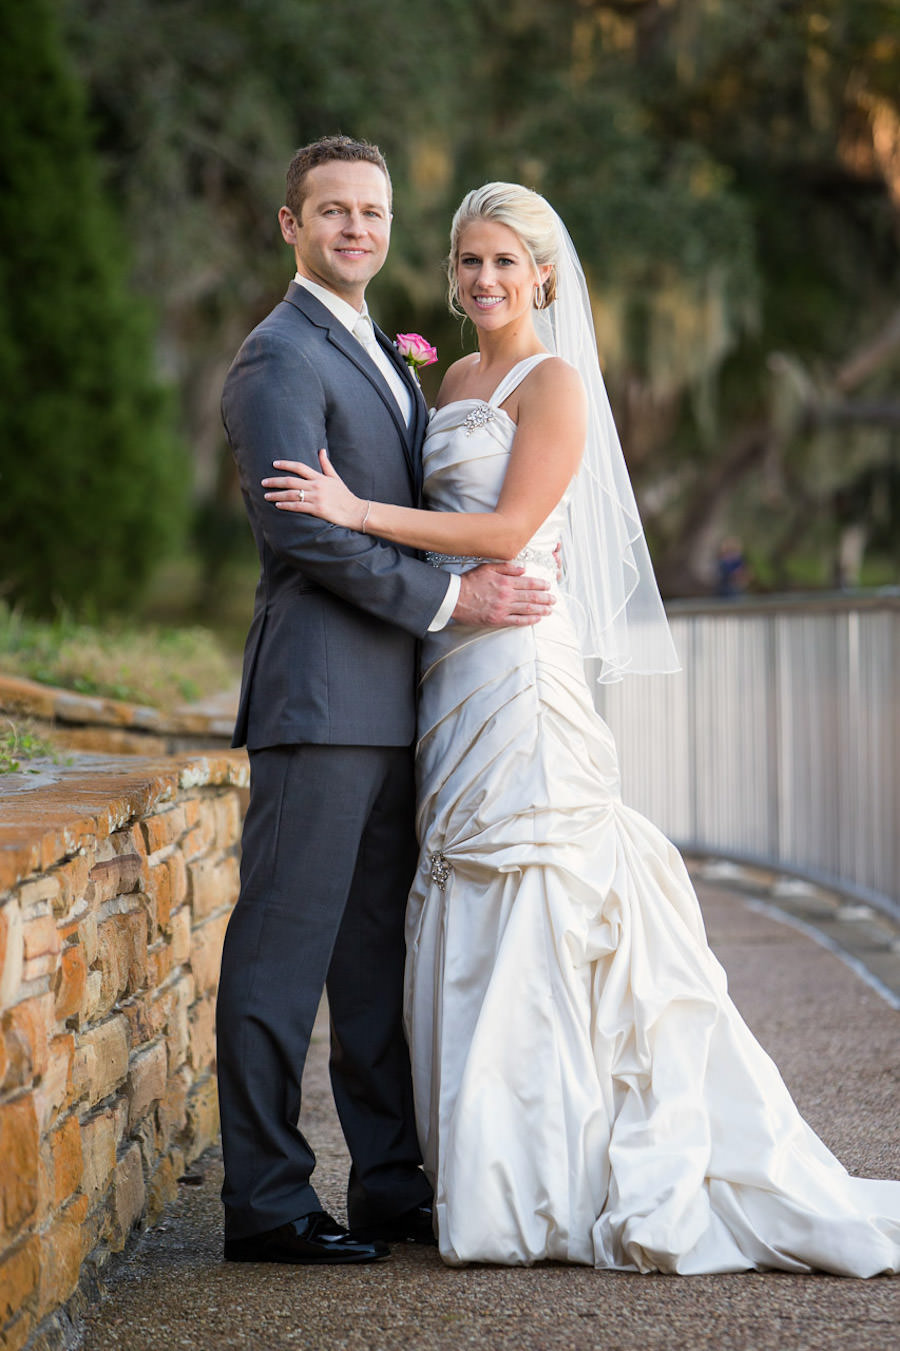 Outdoor, St. Pete Bride and Groom Wedding Portrait in Ivory Allure Wedding Dress and Grey Groom's Suit | St. Pete Wedding Photographer Jeff Mason Photography